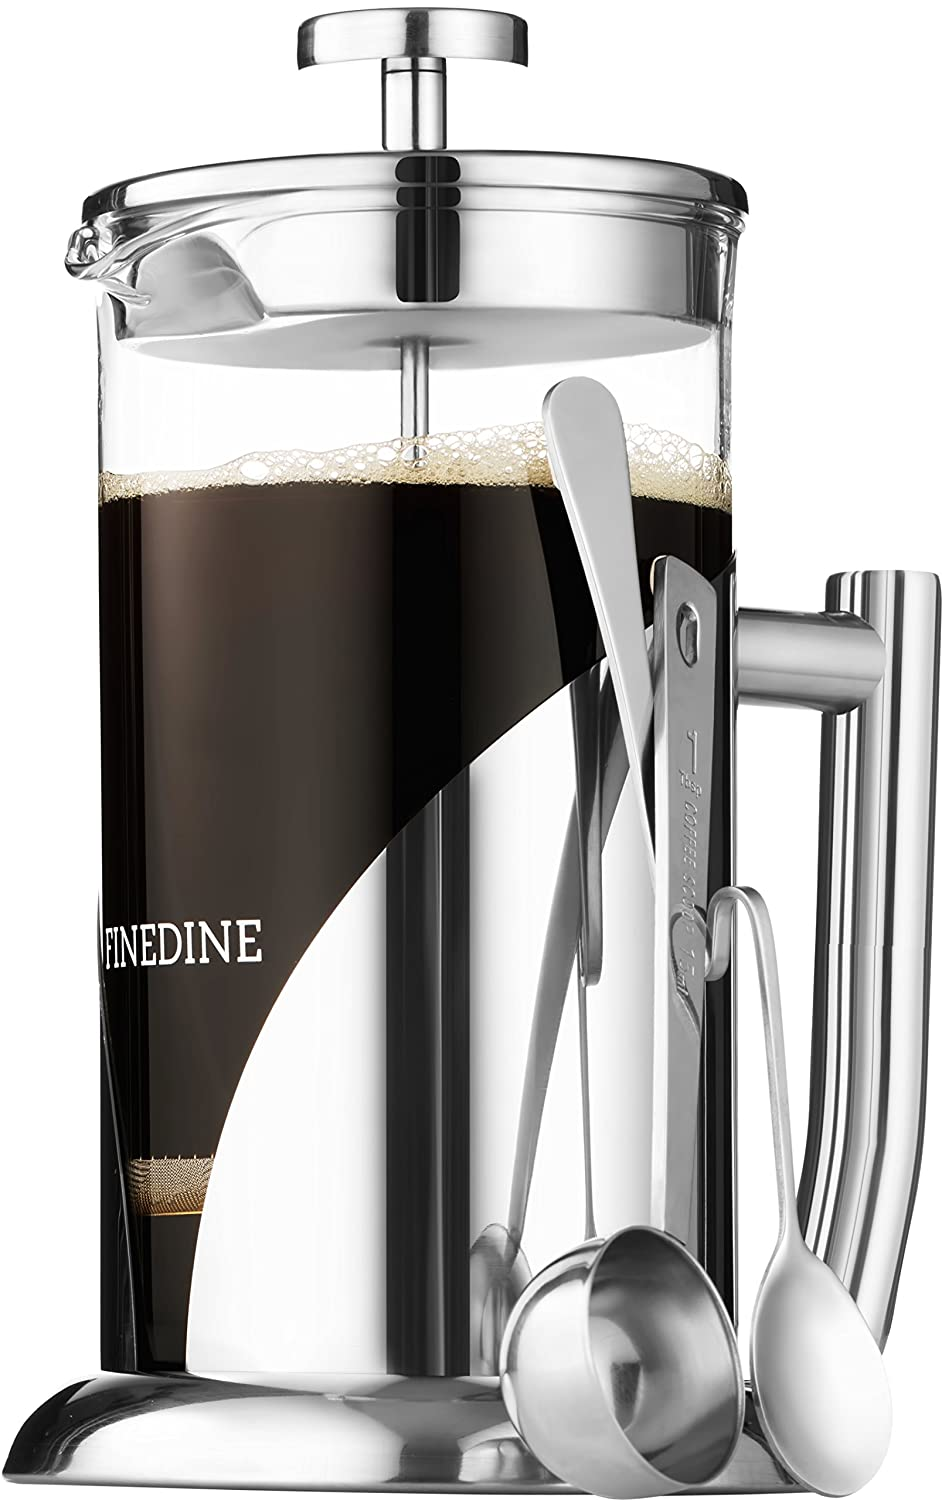 Finedine French Press Coffee Maker - (34-Oz) 18/8 Stainless Steel Double Wall Insulated Retains Heat Longer - Triple-Screen Grounds Filter System, Sleek Matte Black, Extra Filter & Components Included FD-SK501